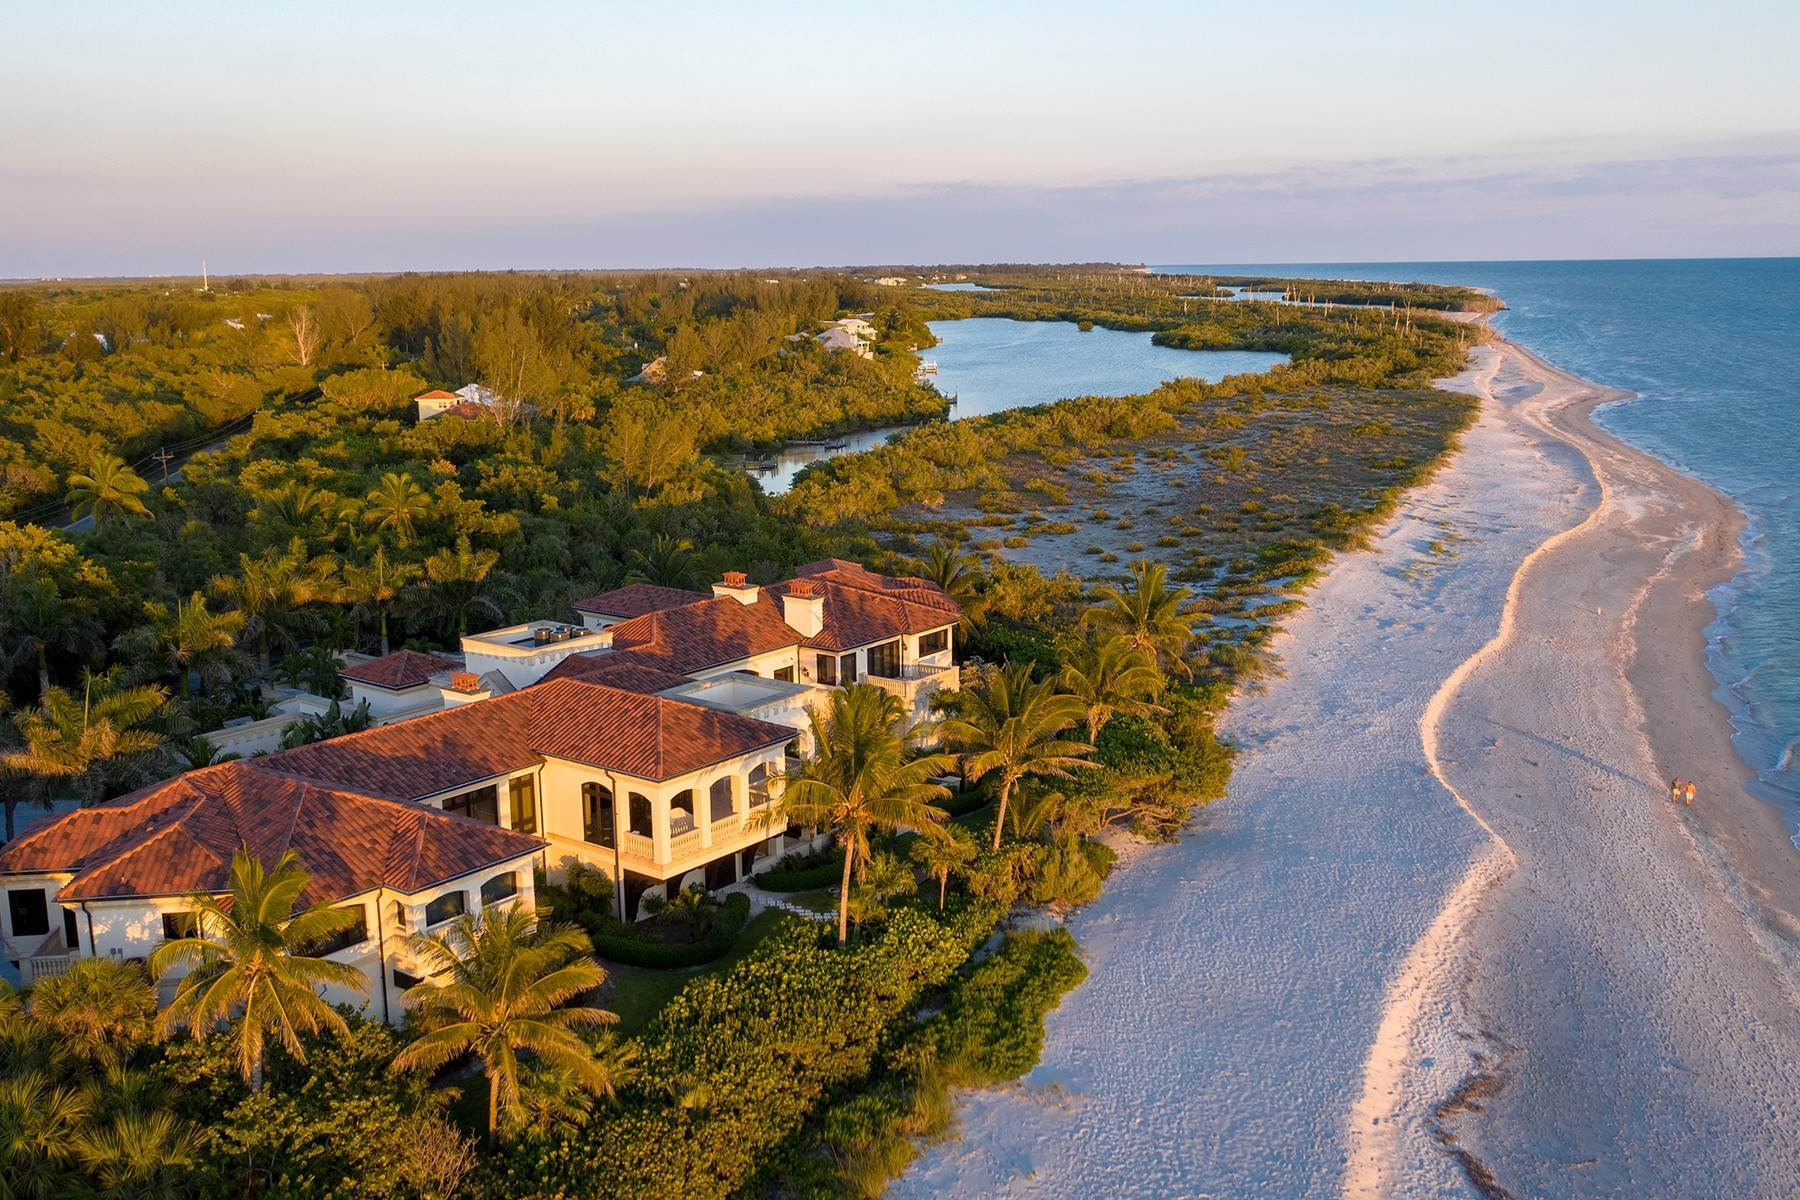 Single Family Homes for Sale at METES AND BOUNDS 6111 Sanibel Captiva Road Sanibel, Florida 33957 United States